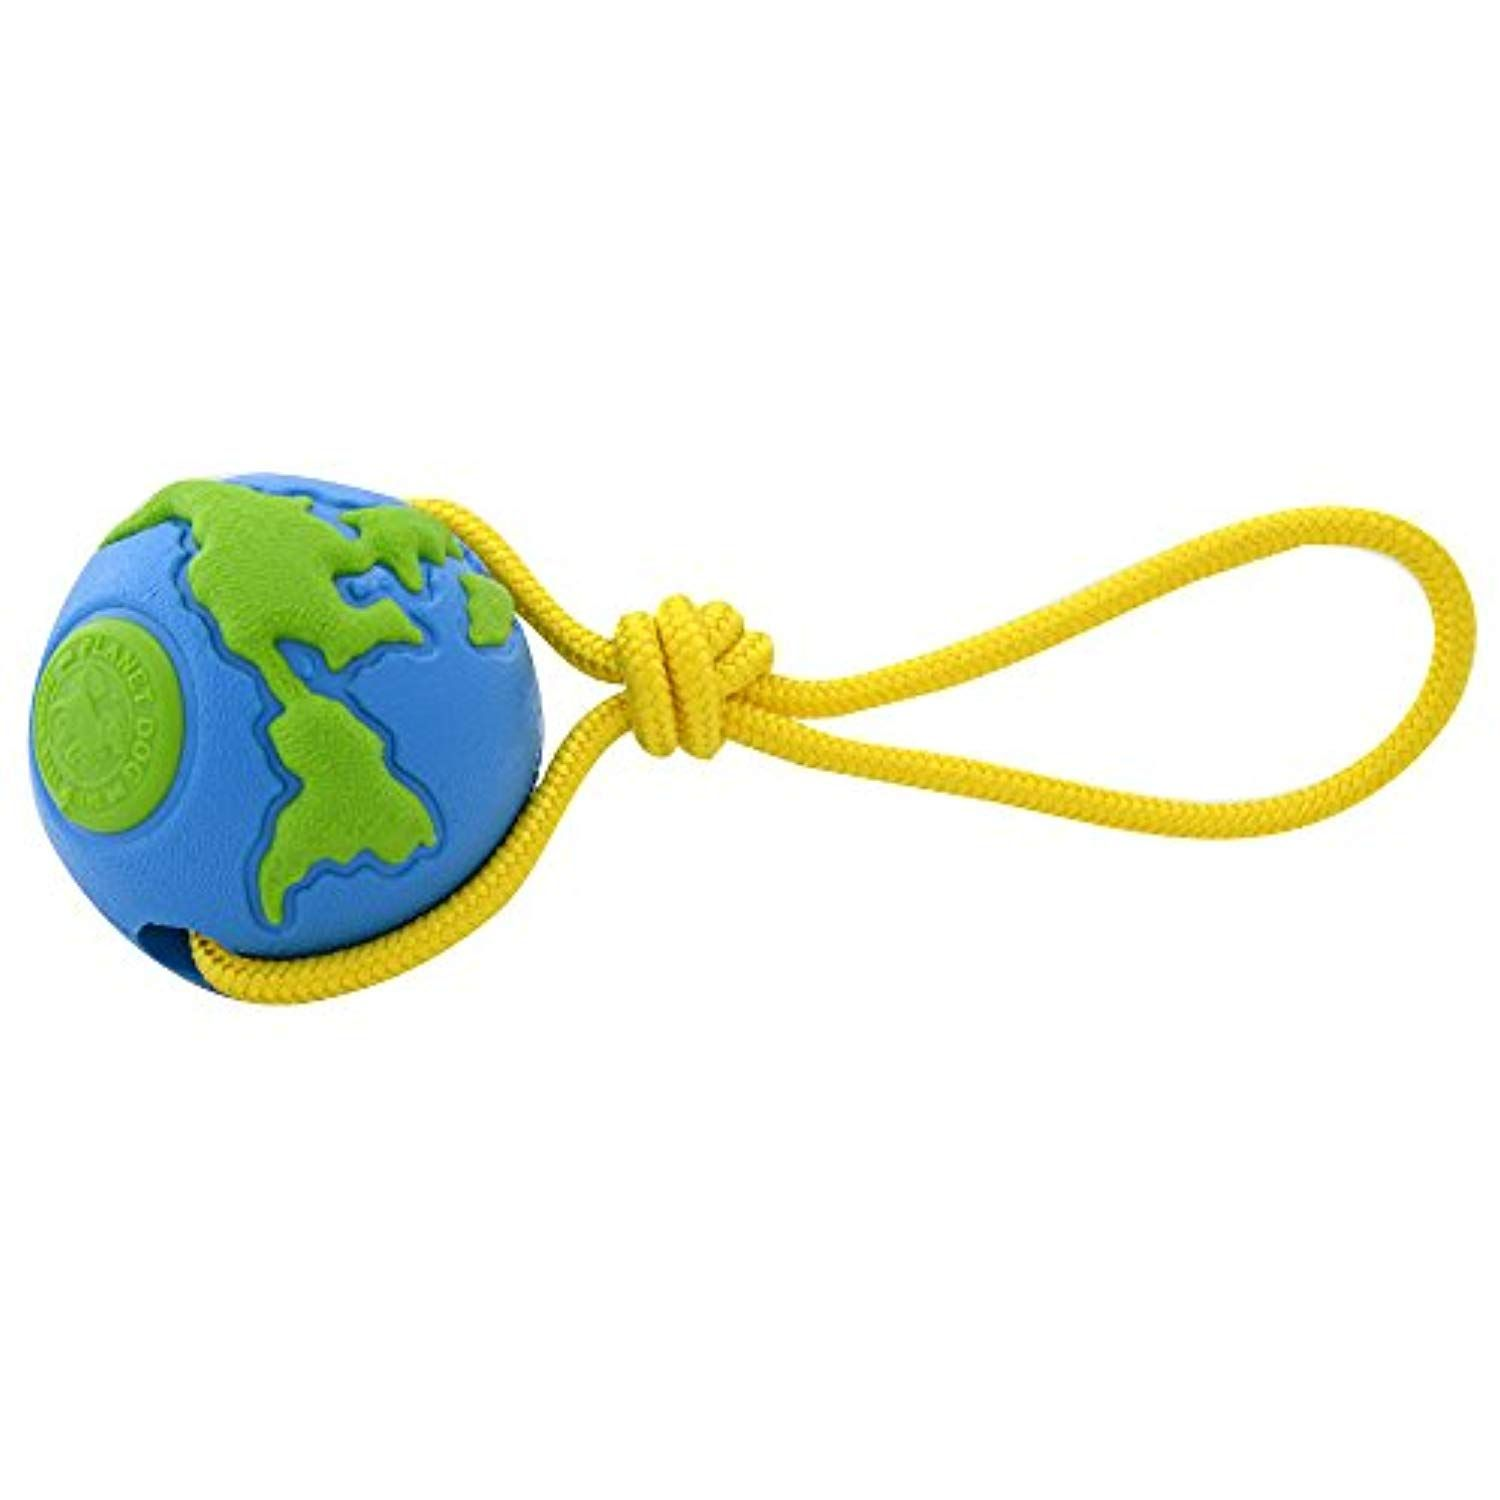 Planet Dog Orbee Ball Planet Ball With Rope Interactive Durable